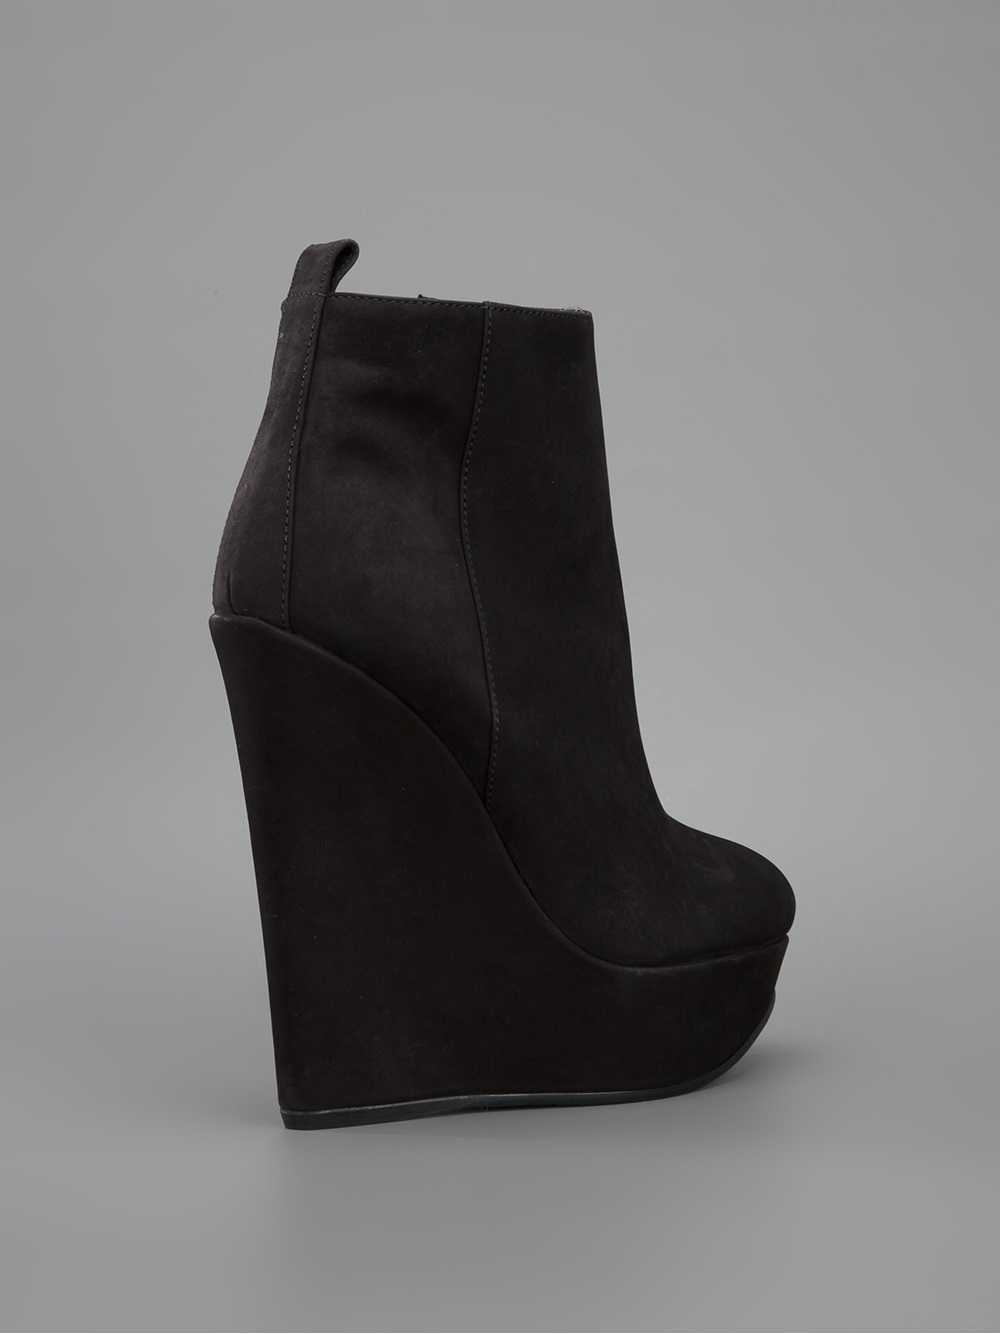 DSquared² Wedge Bootie in Black